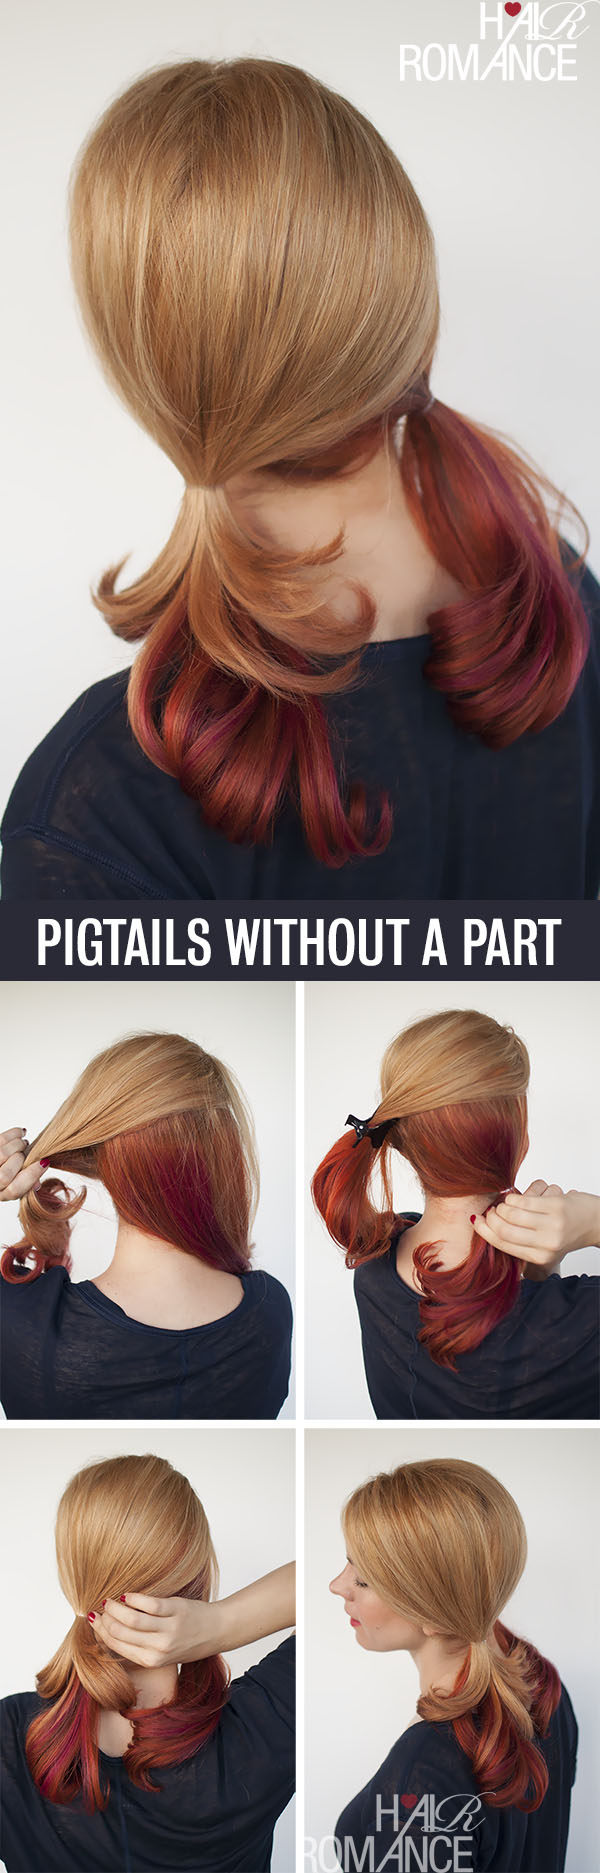 Hair Romance - Hair tutorial for pigtails without a part